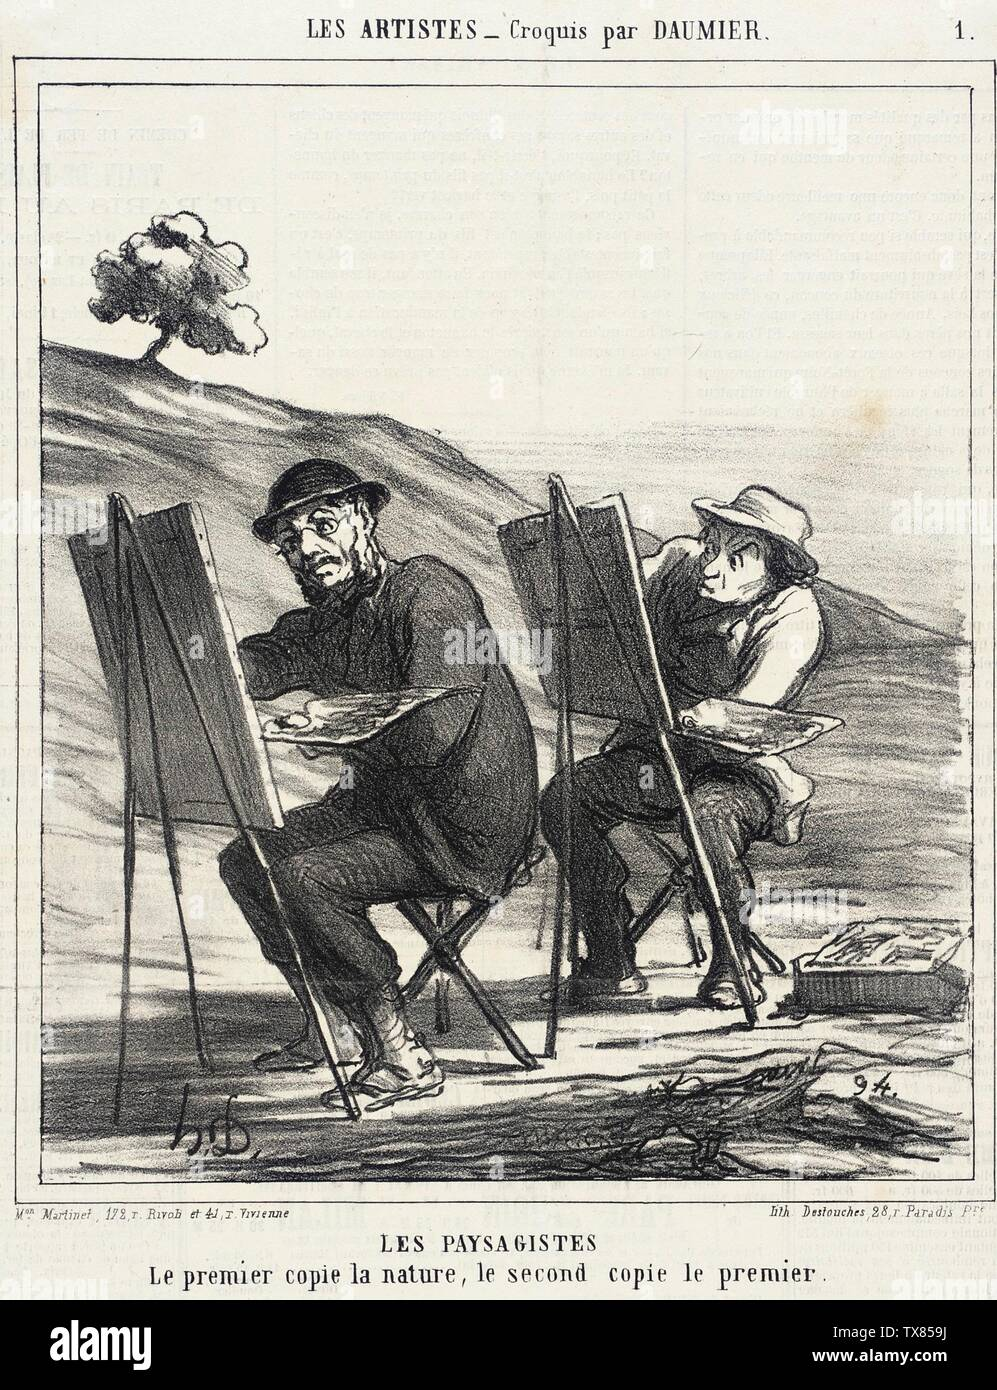 'Les Paysagistes. Le premier copie la nature...; English:  France, 1865 Series: Les Artistes Periodical: Le Charivari, 12 May 1865 Prints; lithographs Lithograph Sheet: 9 1/8 x 7 13/16 in. (23.18 x 19.84 cm) Gift of Mrs. Florence Victor from The David and Florence Victor Collection (M.91.82.324) Prints and Drawings; 1865date QS:P571,+1865-00-00T00:00:00Z/9; ' - Stock Image